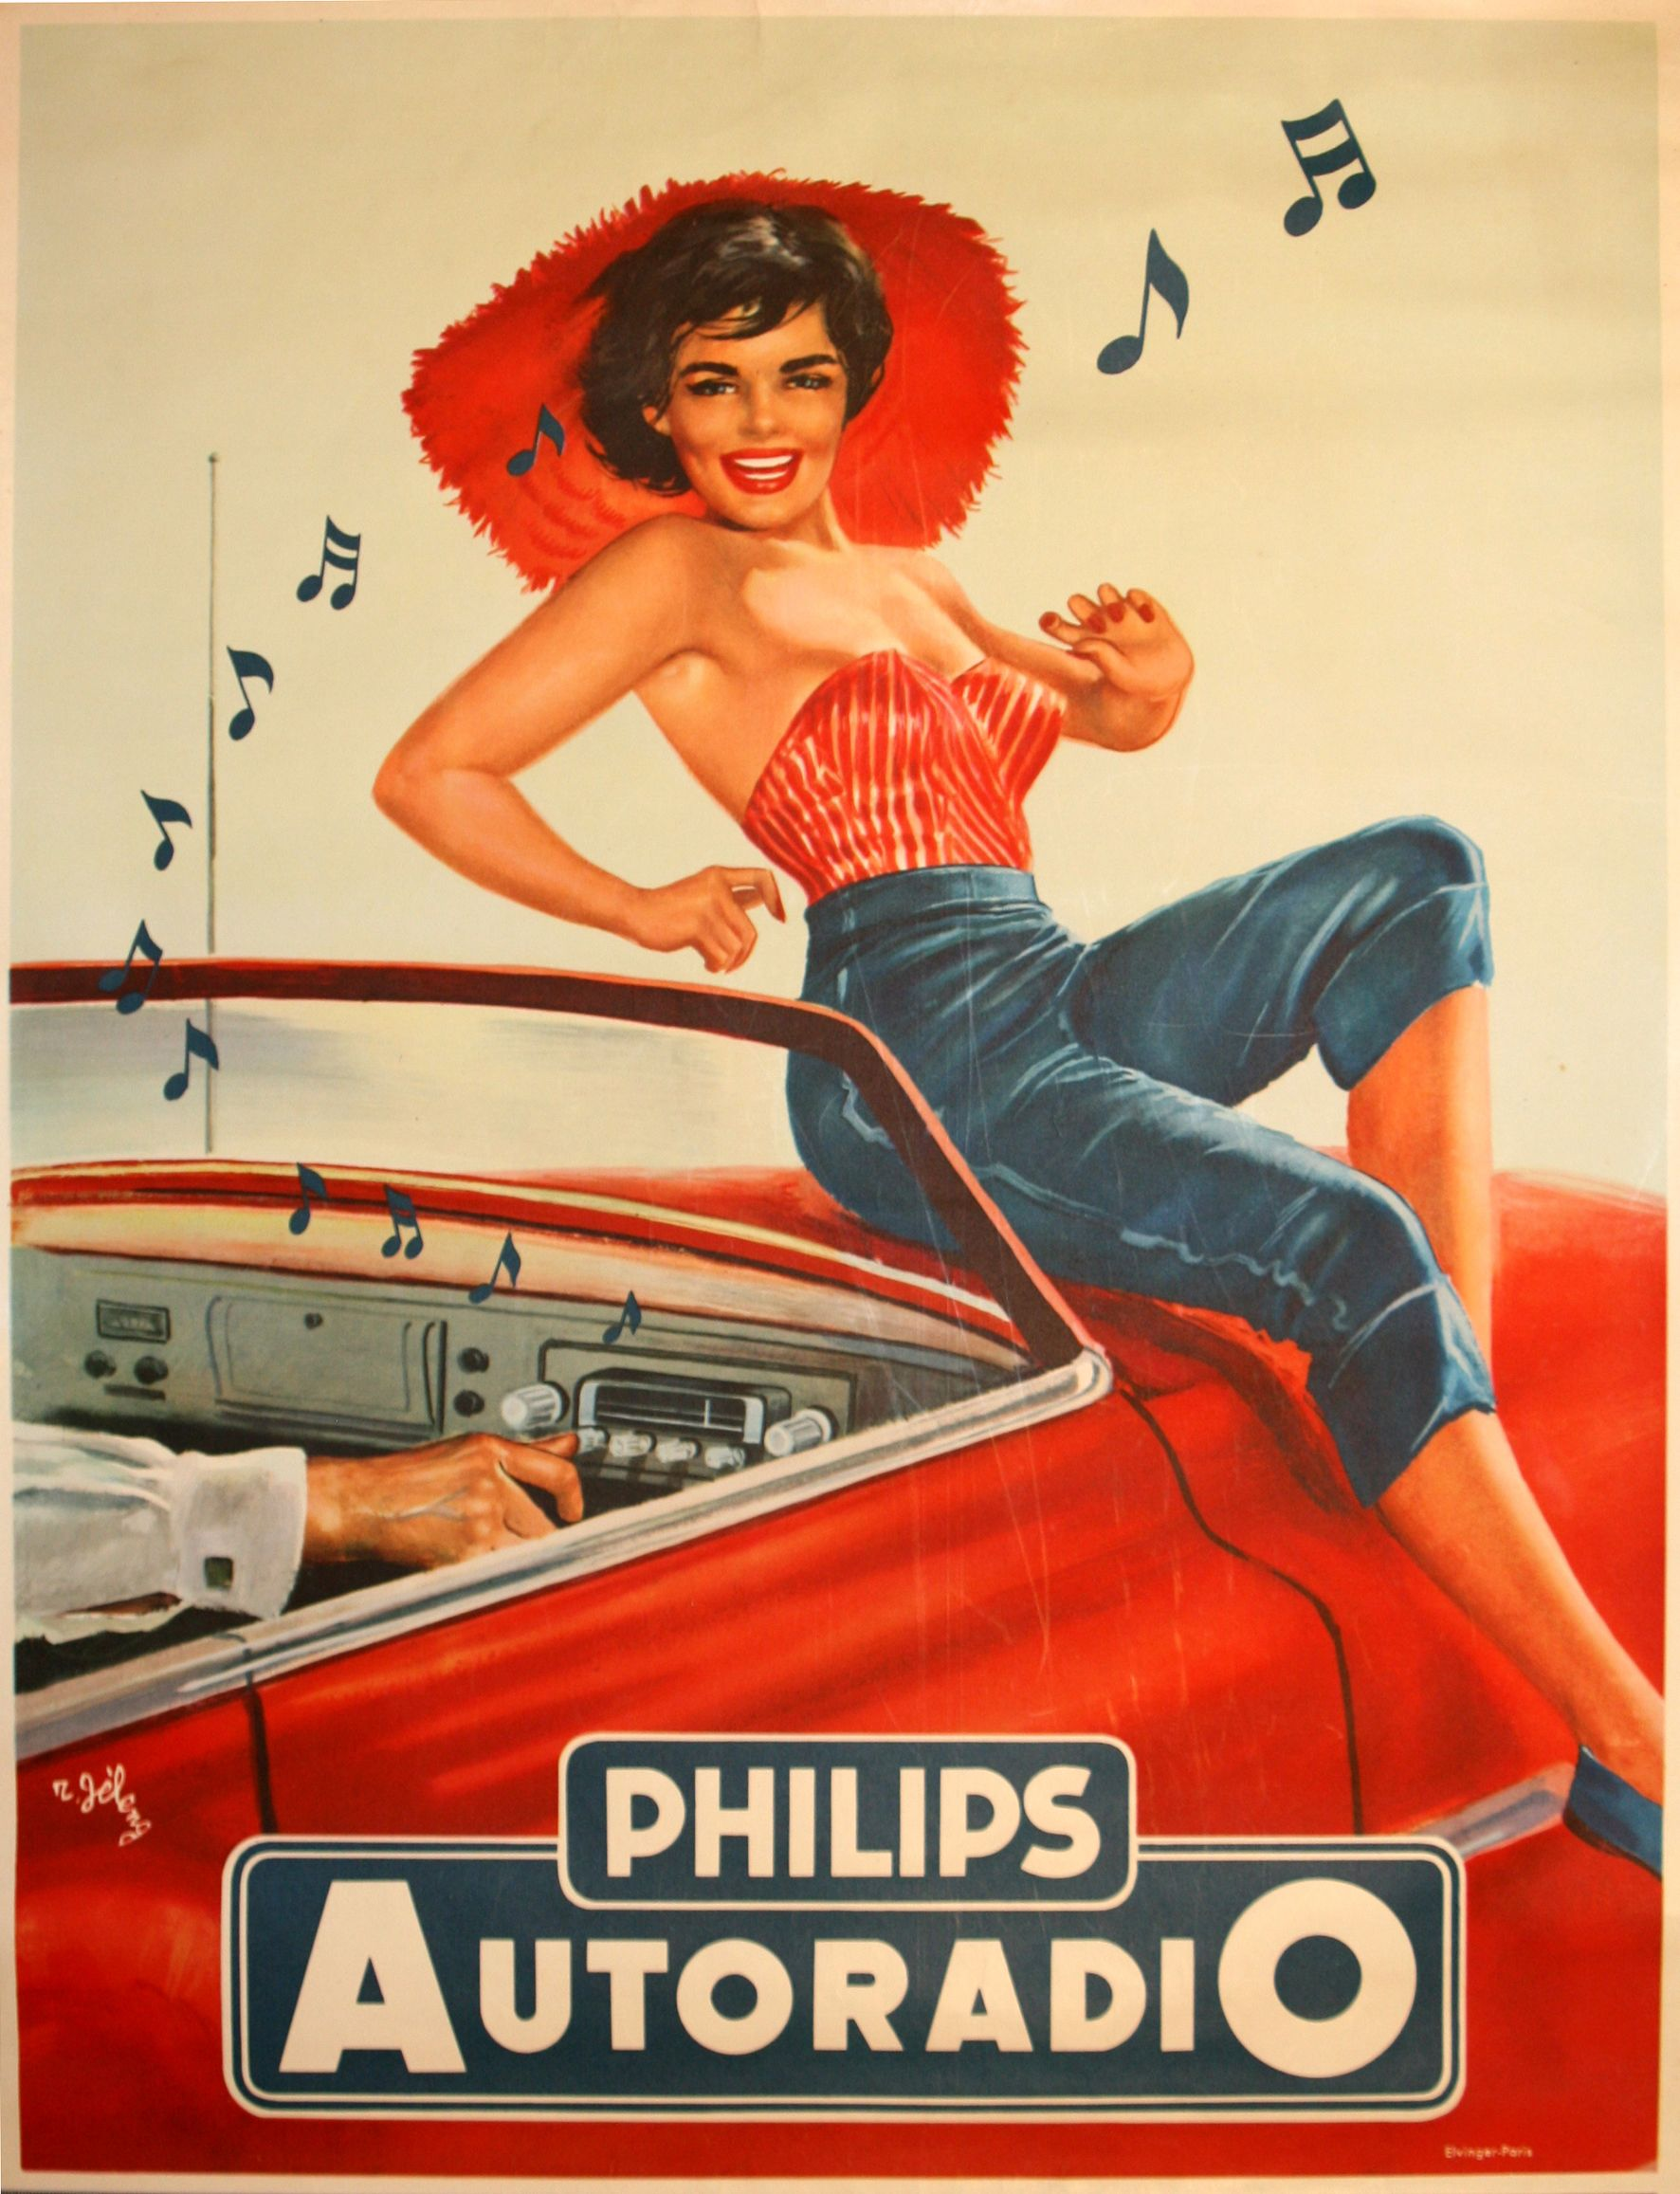 A pretty girl can sell anything: Philips Autoradio